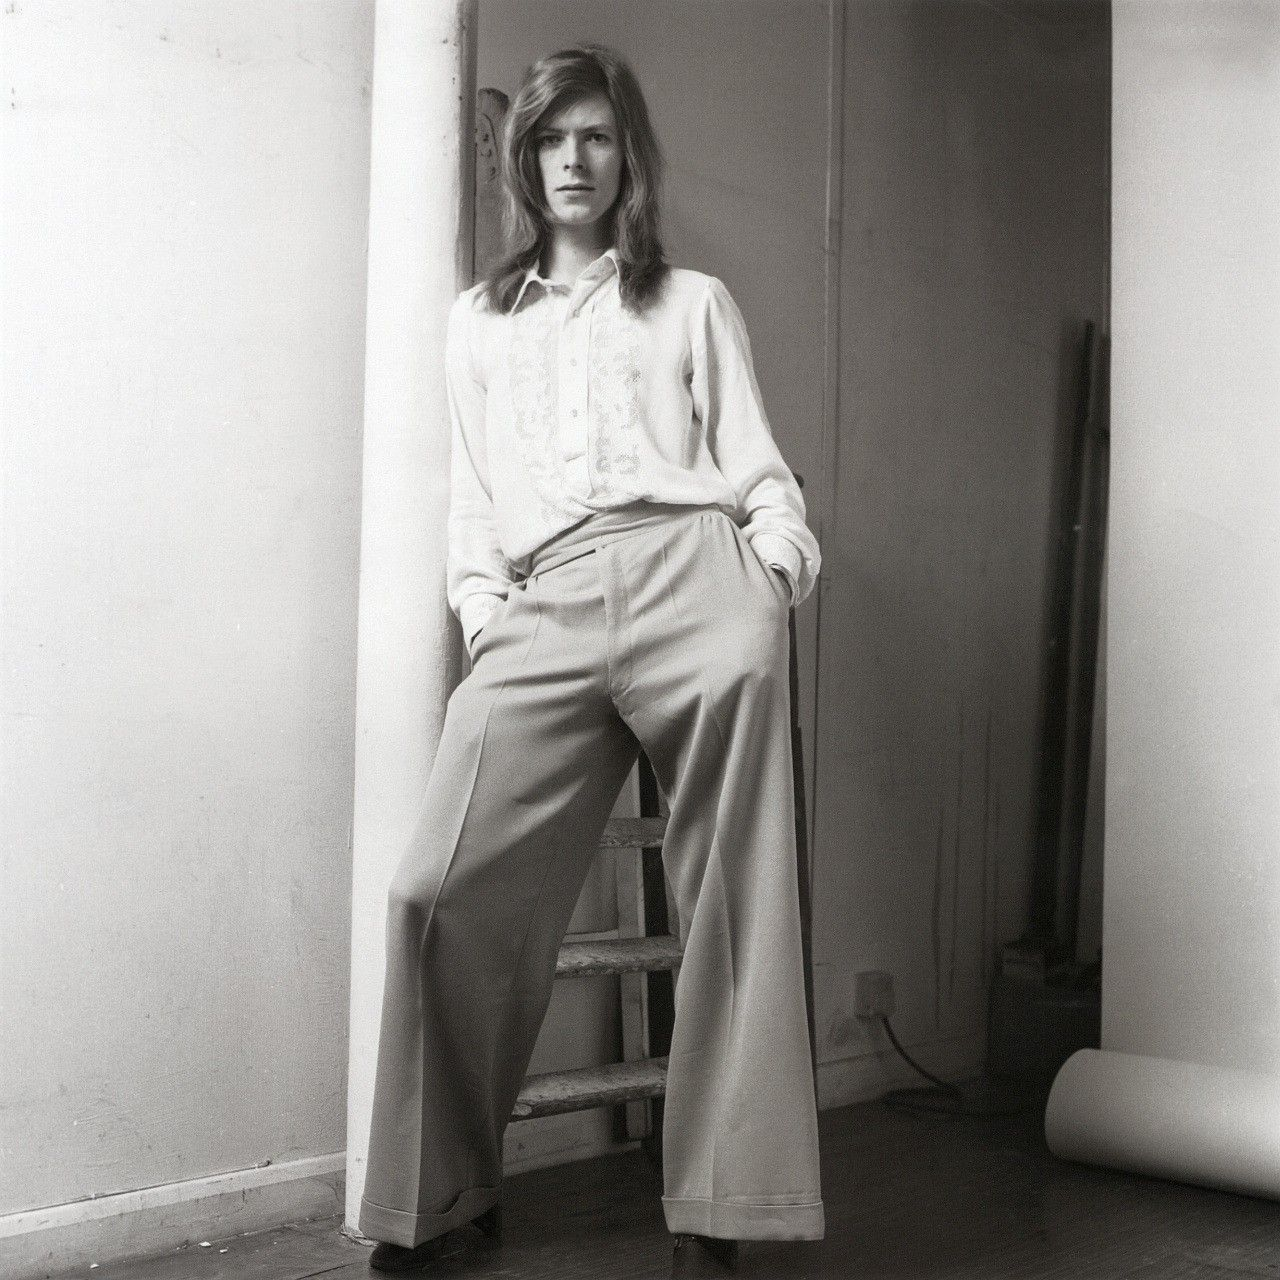 David Bowie 1971 David Bowie Long Hair David Bowie Starman David Bowie